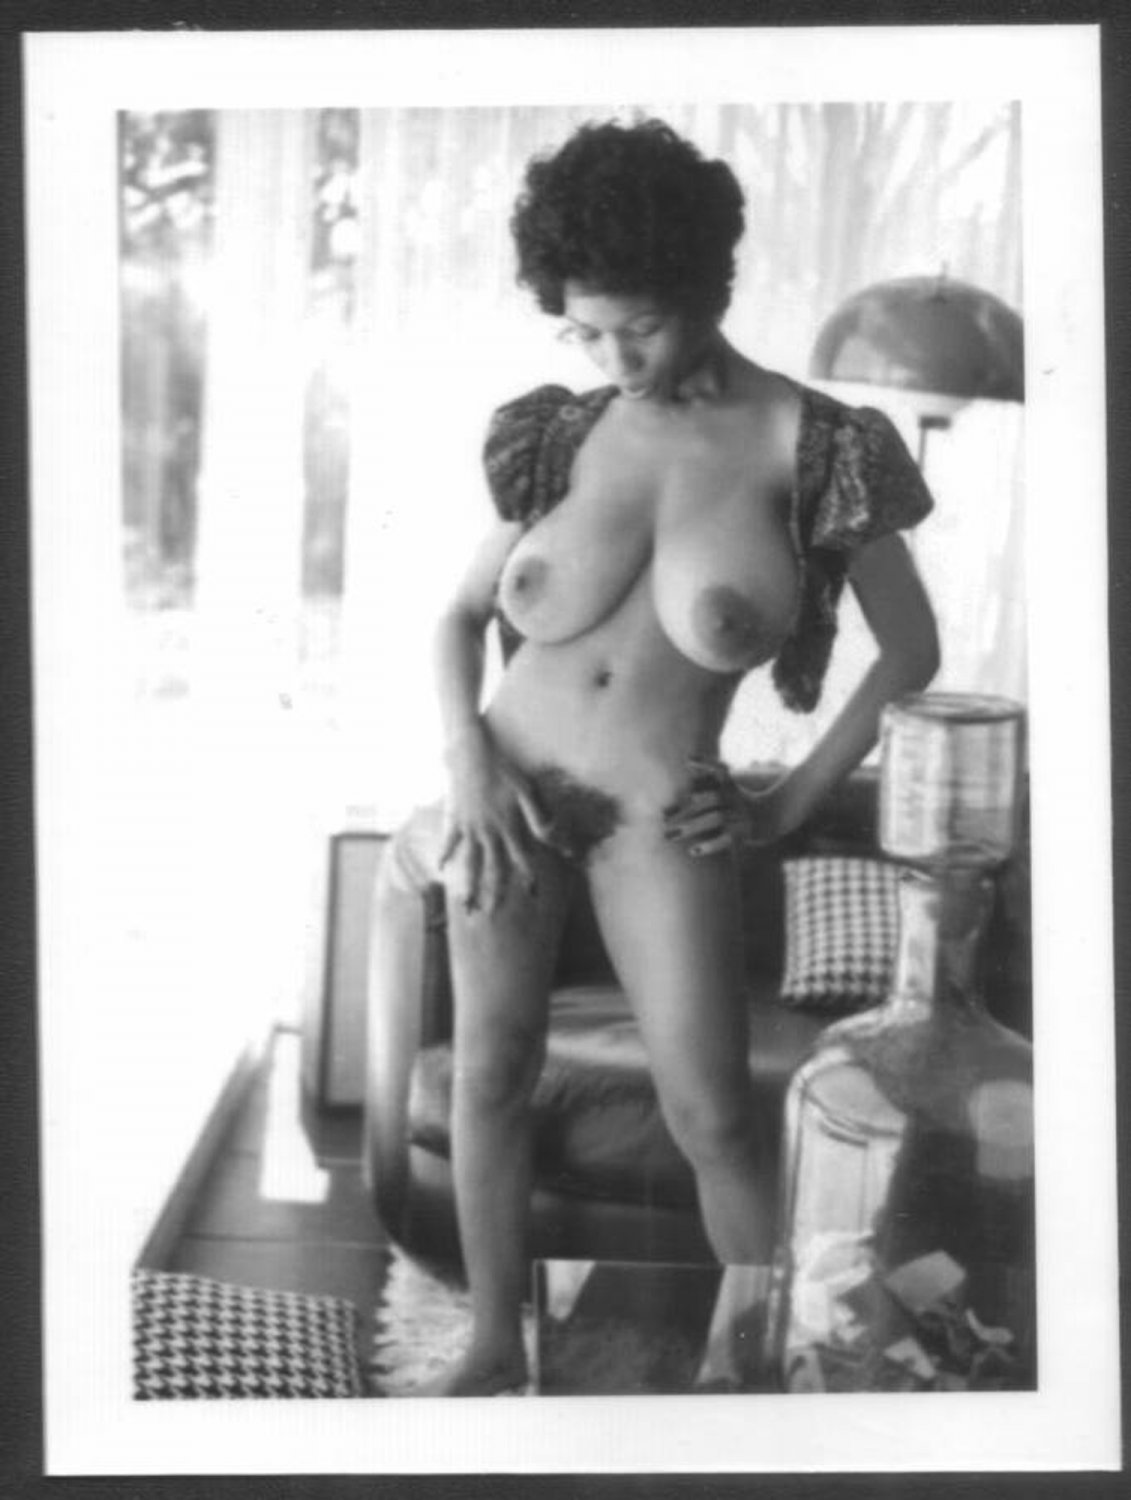 EBONY SYLVIA MCFARLAND TOPLESS NUDE HUGE BREASTS HAIRY PUSSY NEW REPRINT 5X7 SM-98